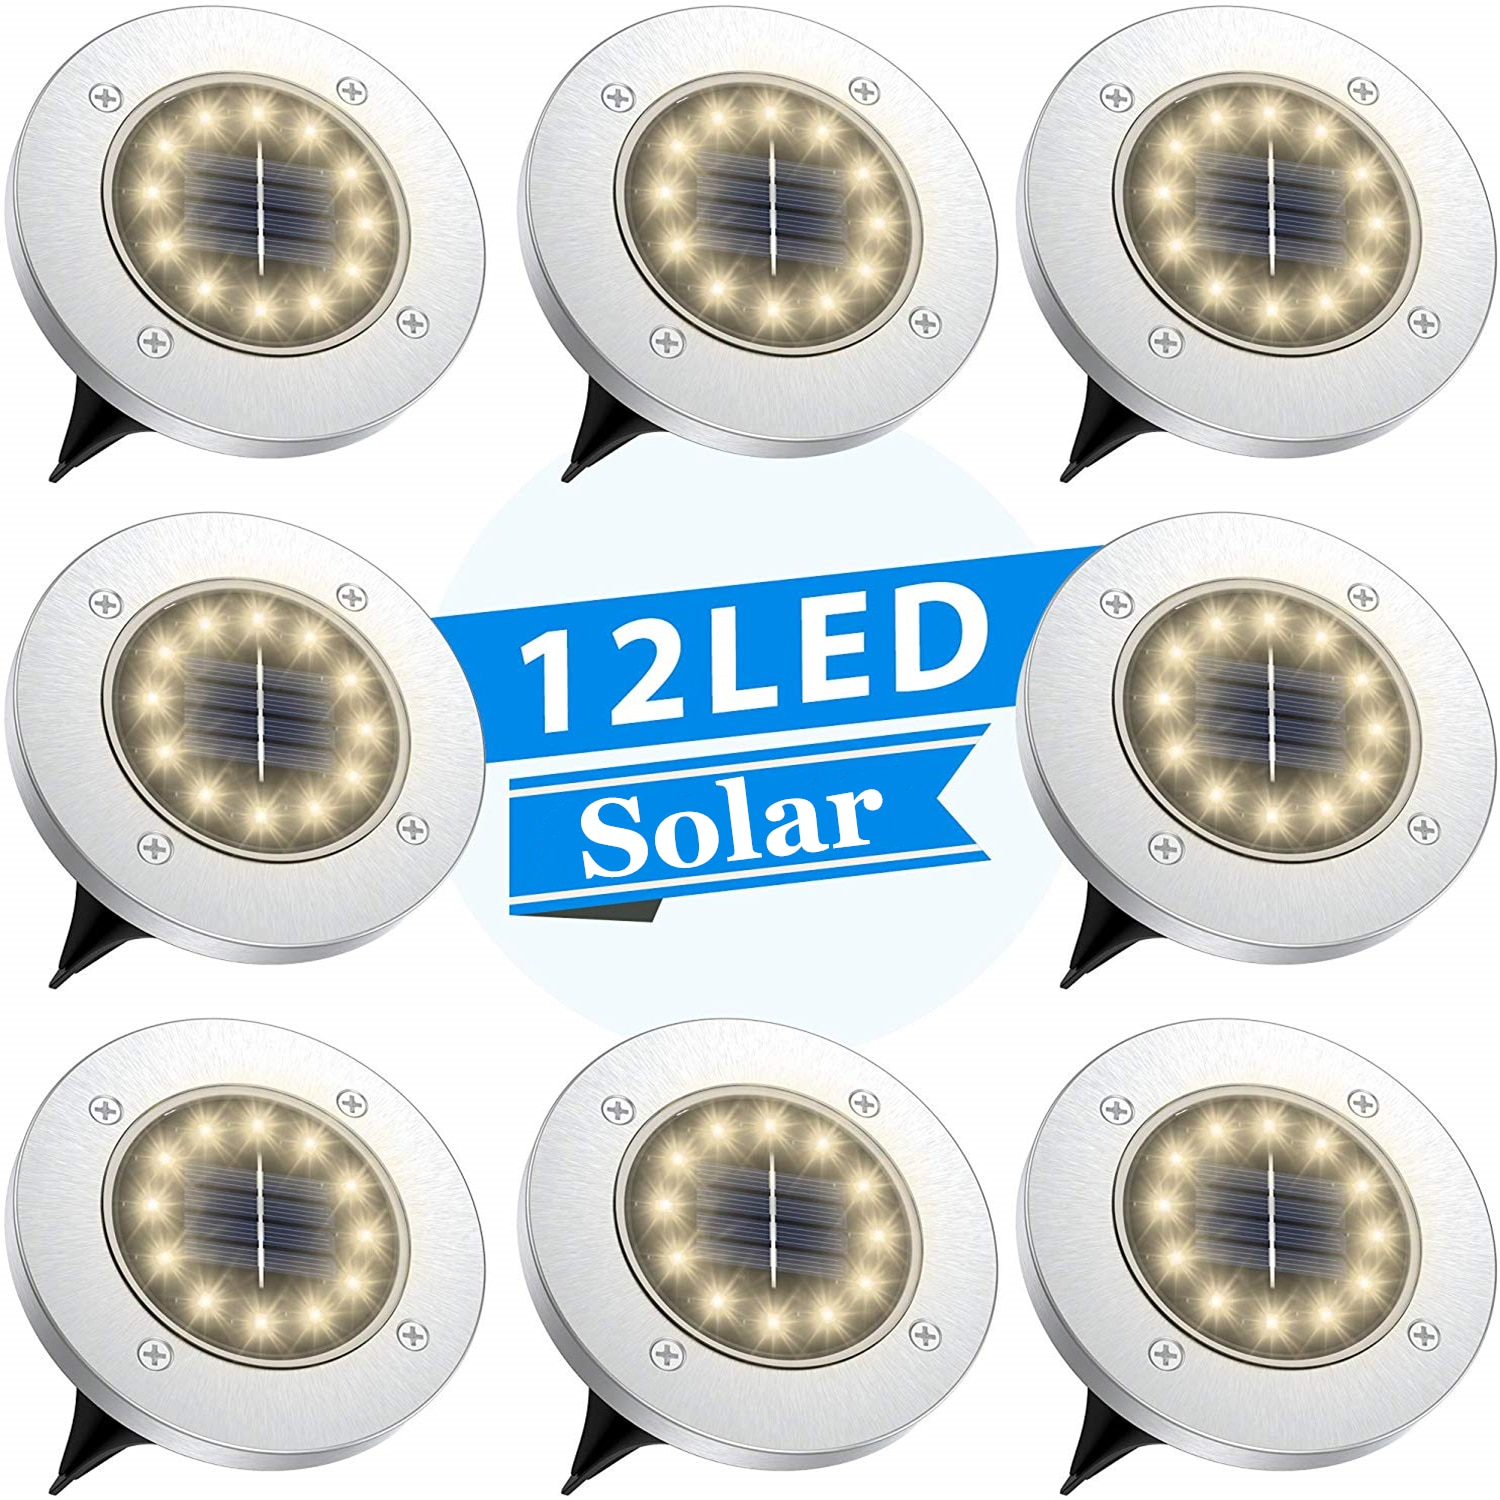 Solar Disk Lights 12 LED Ground Outdoor Waterproof Stainless Steel in for Walkway Pathway Lawn